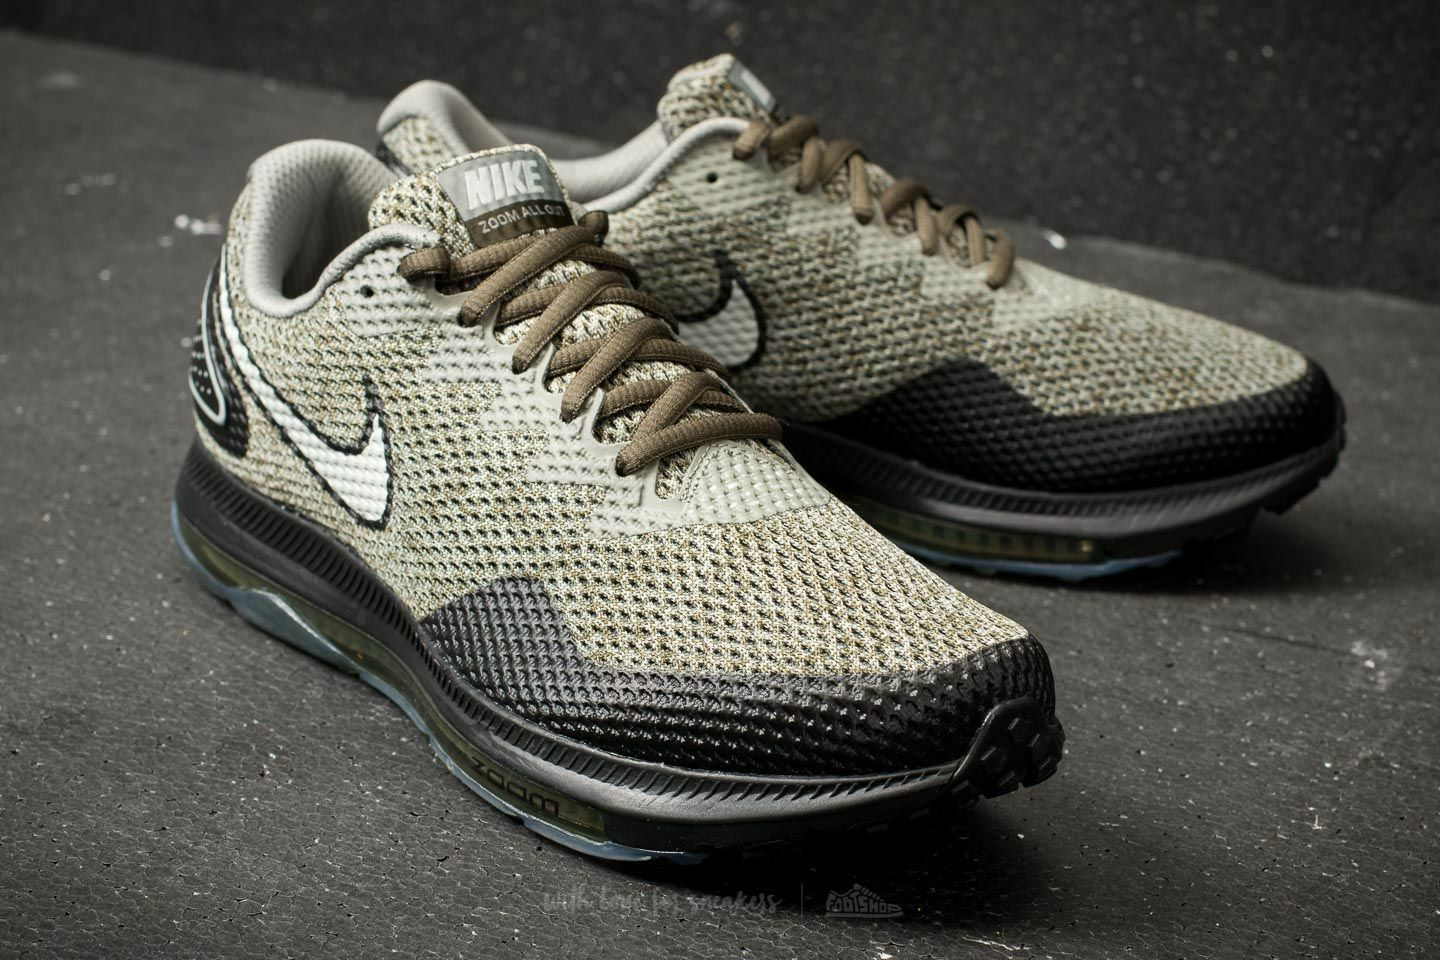 1c3bea212f3 Nike Zoom All Low 2 AJ0035 300 Cargo Khaki Men's Running shoes SIZE 13 Out  nsvqgv10585-Athletic Shoes